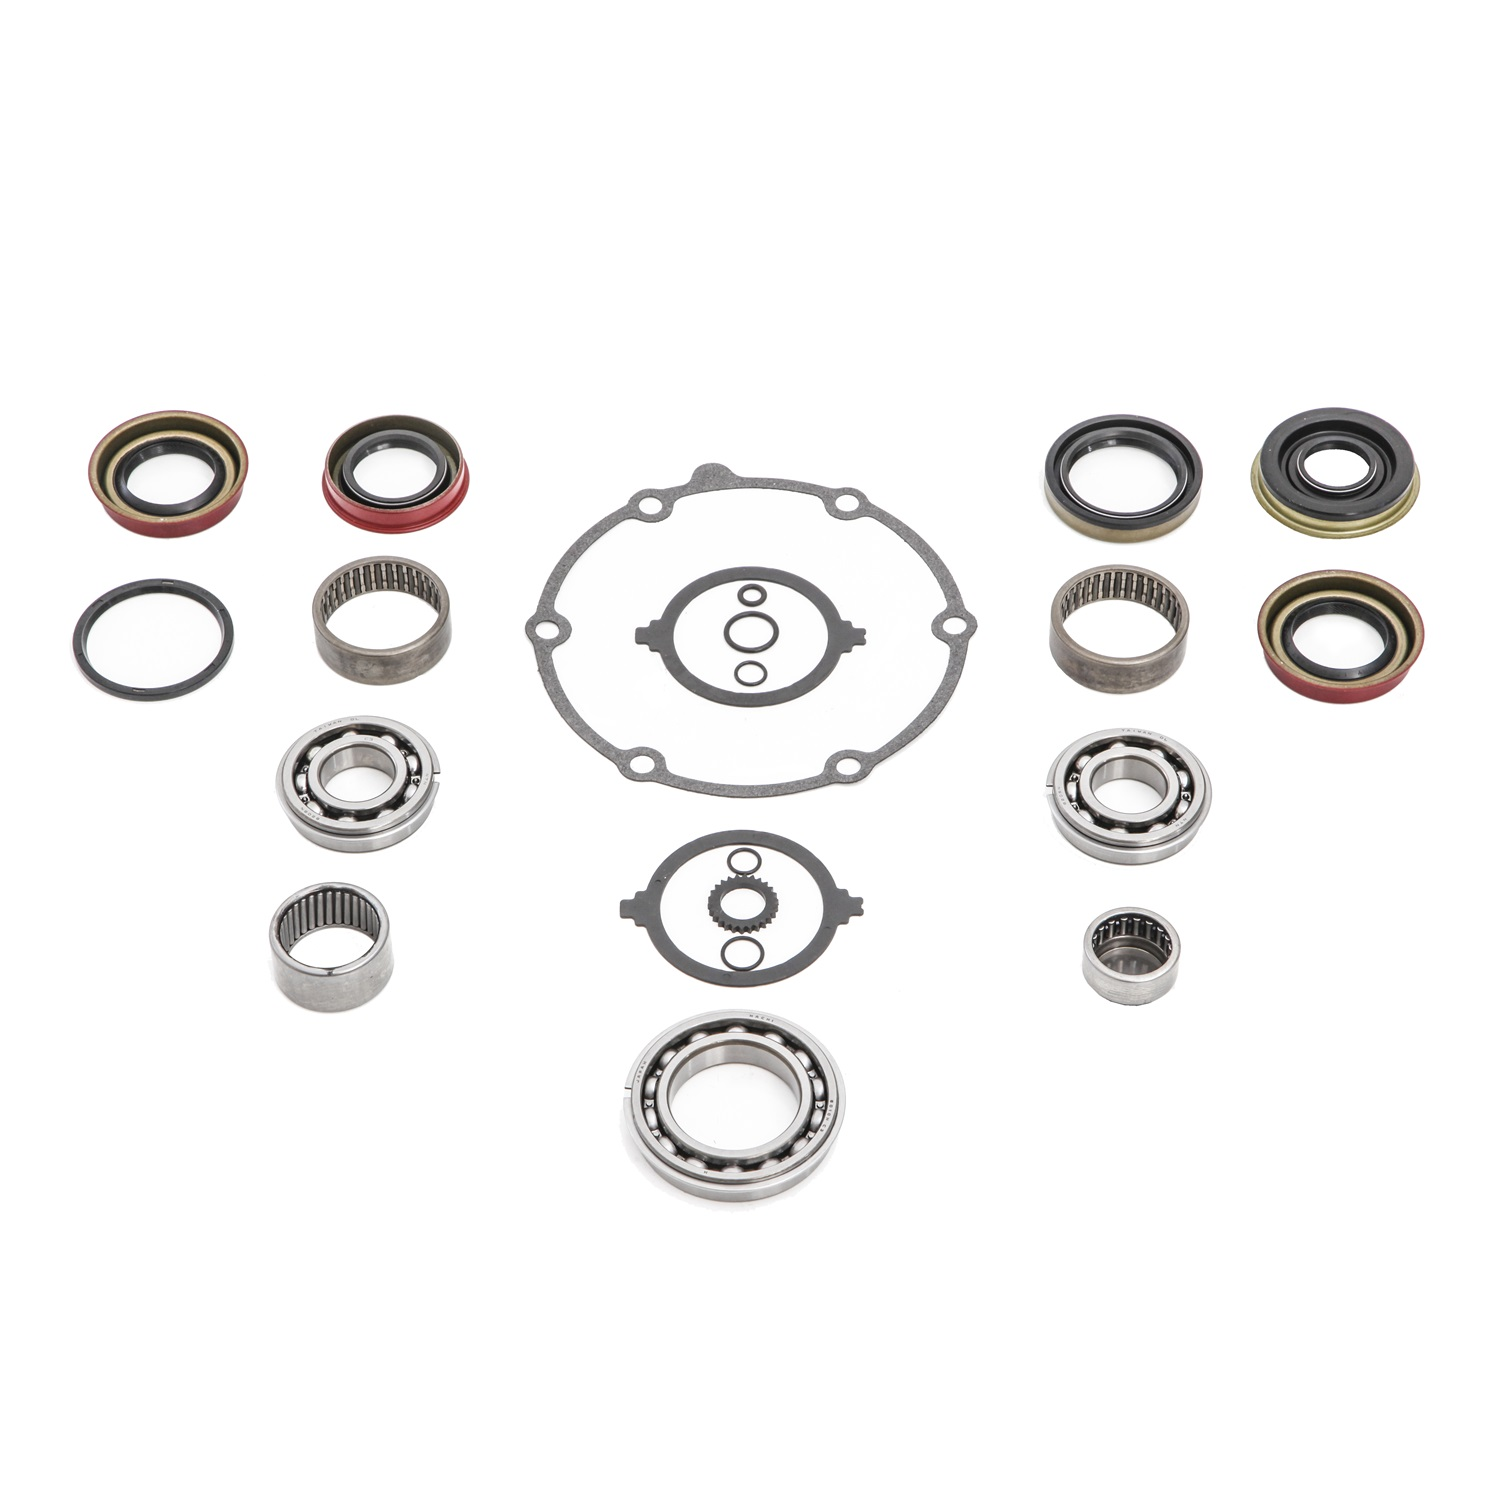 G2 Axle And Gear 37 249j Transfer Case Kit Fits 93 98